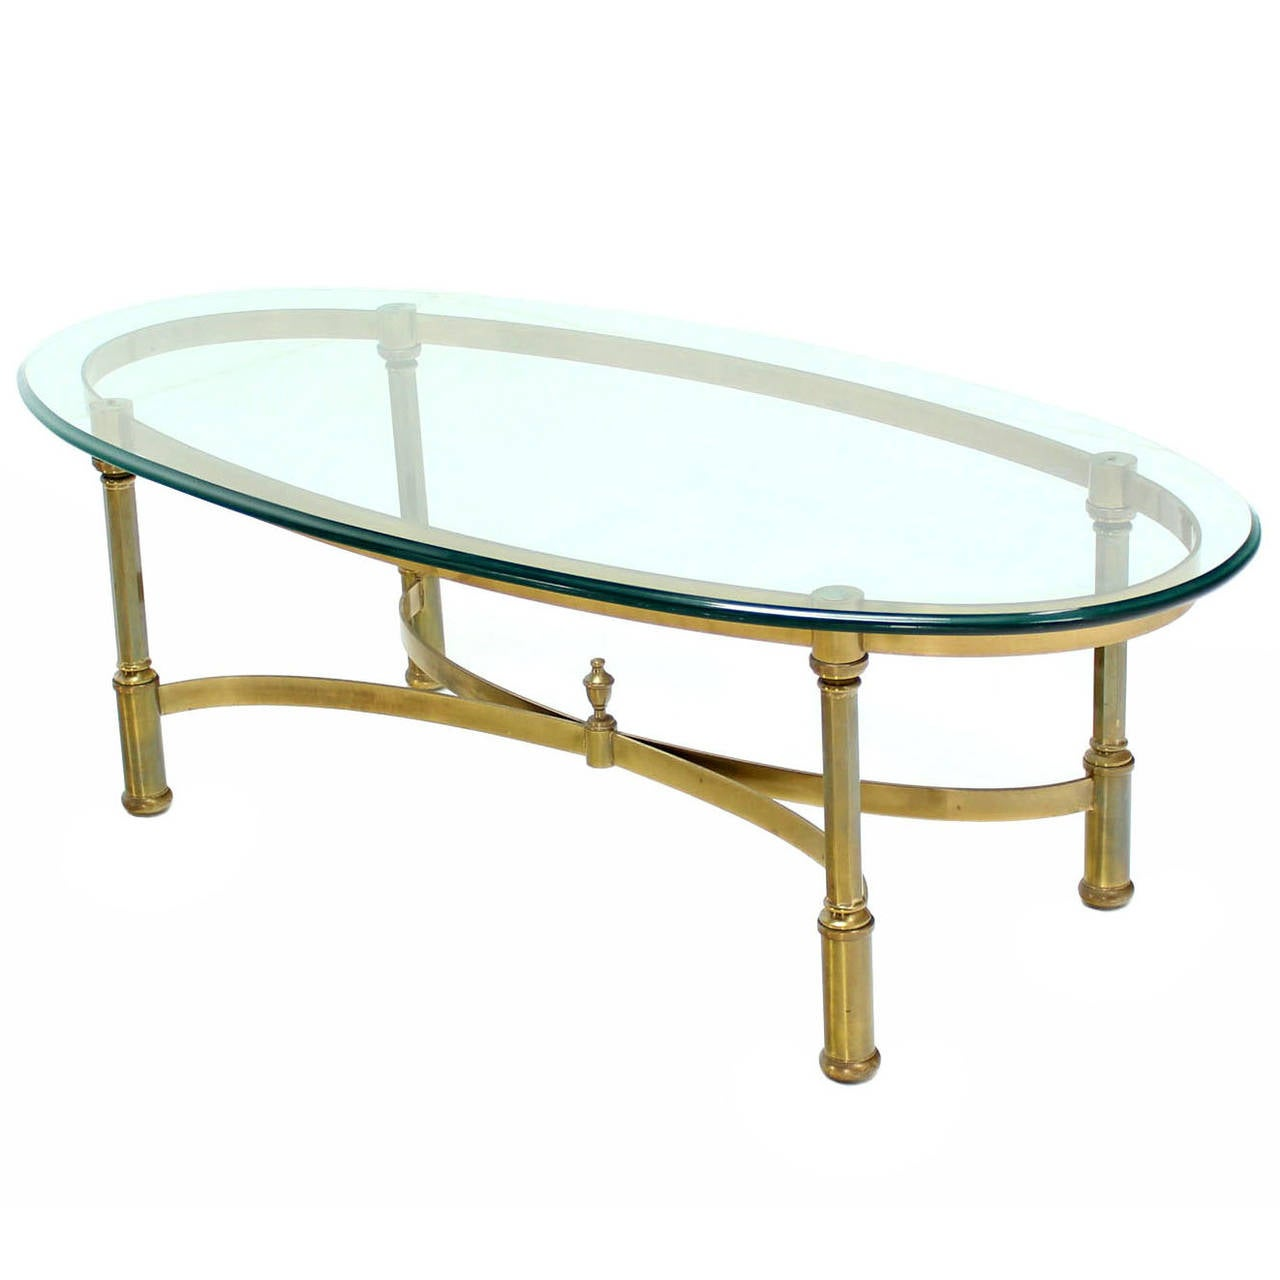 Oval brass and glass coffee table in style of jansen at 1stdibs Glass oval coffee tables